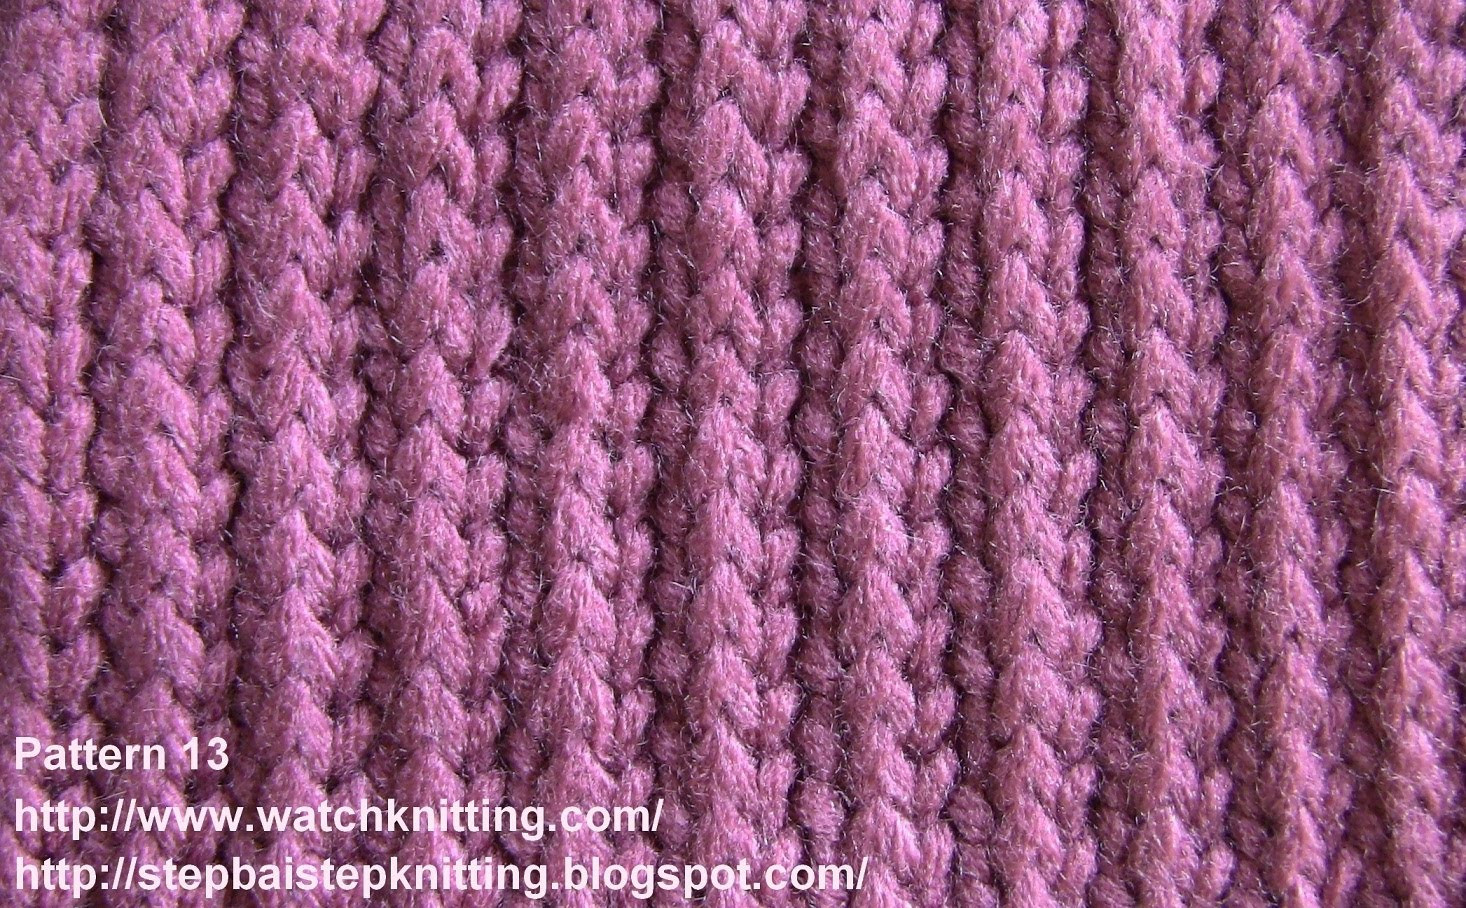 New Knitting Stitch Patterns for Beginners Knitting Design Of Incredible 42 Images Knitting Design